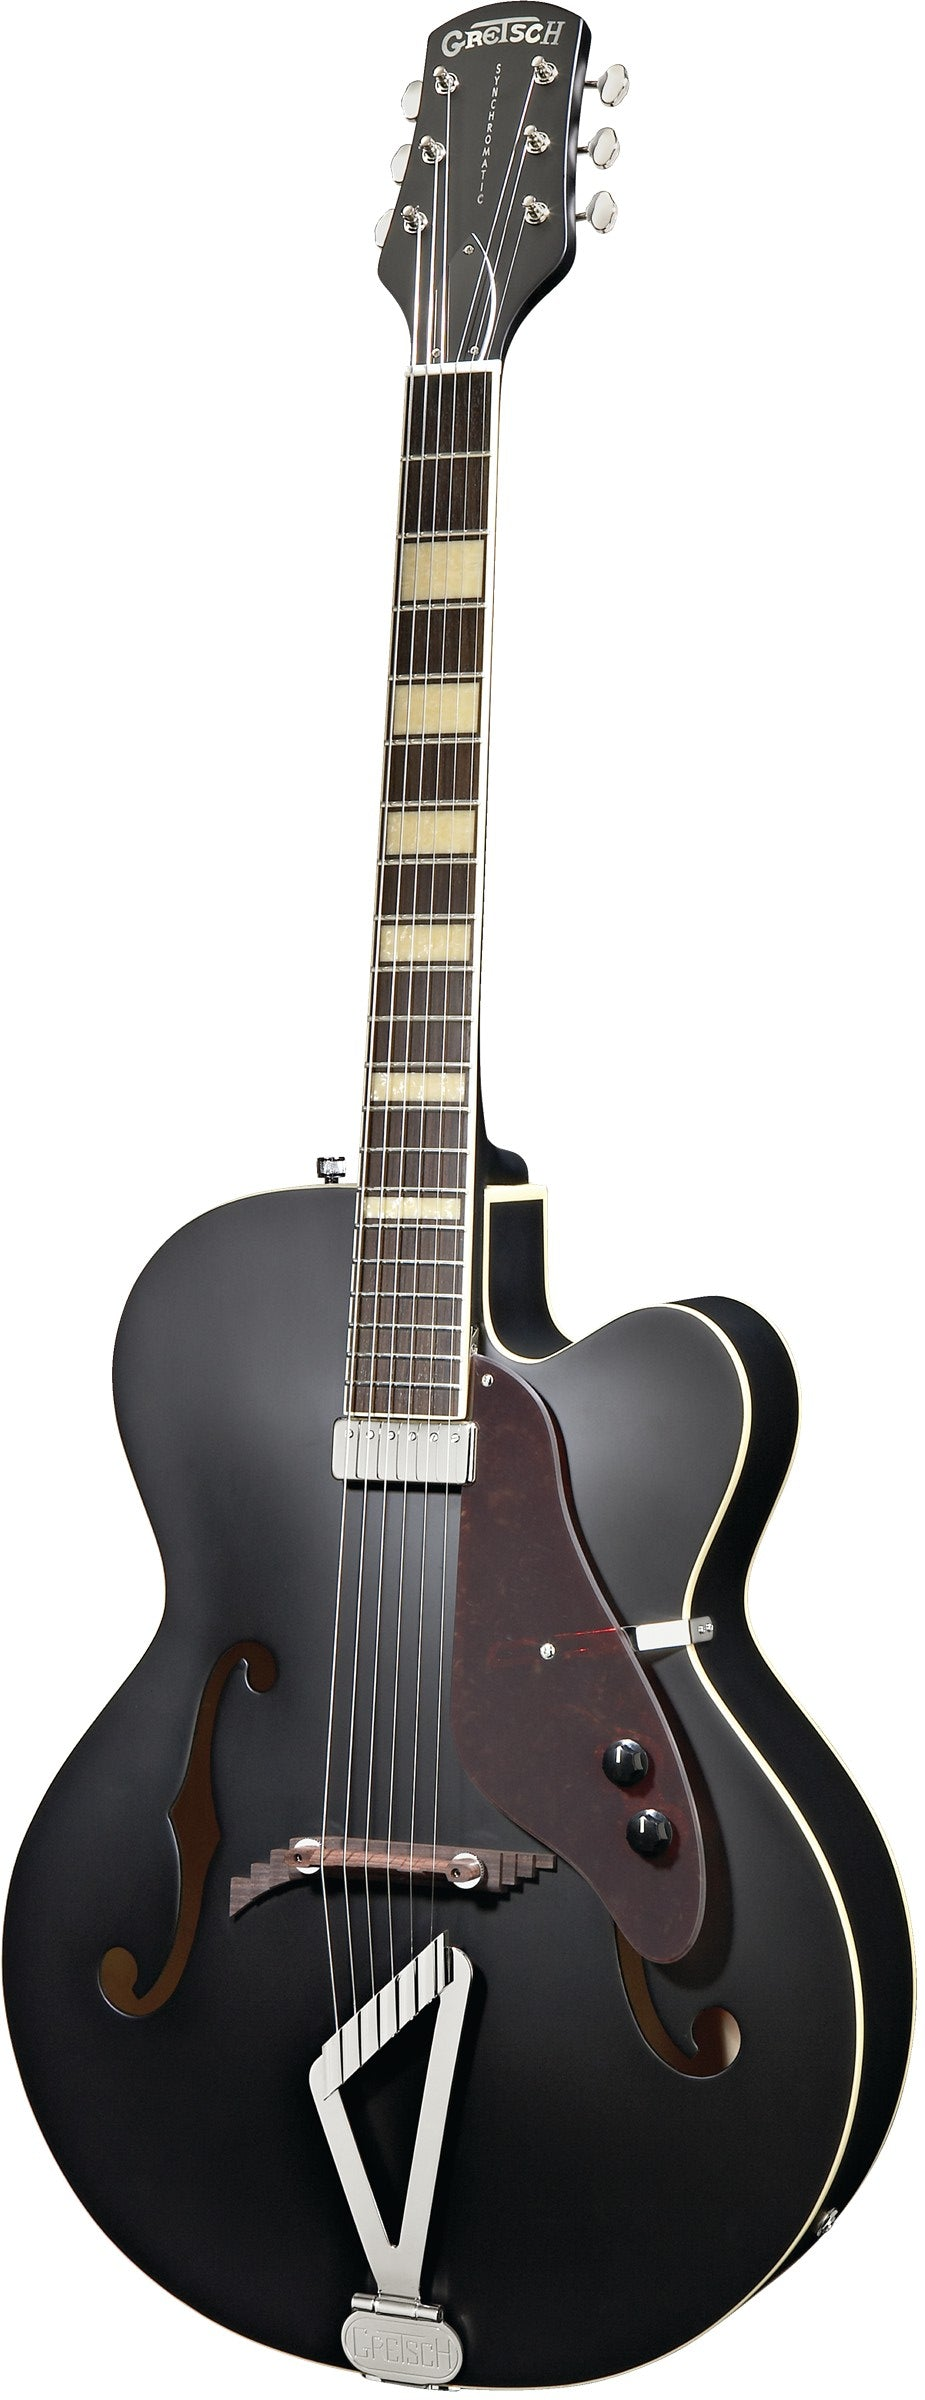 Gretsch G100BKCE Synchromatic Archtop Cutaway Hollow Body Electric, Rosewood Fingerboard, Flat Black